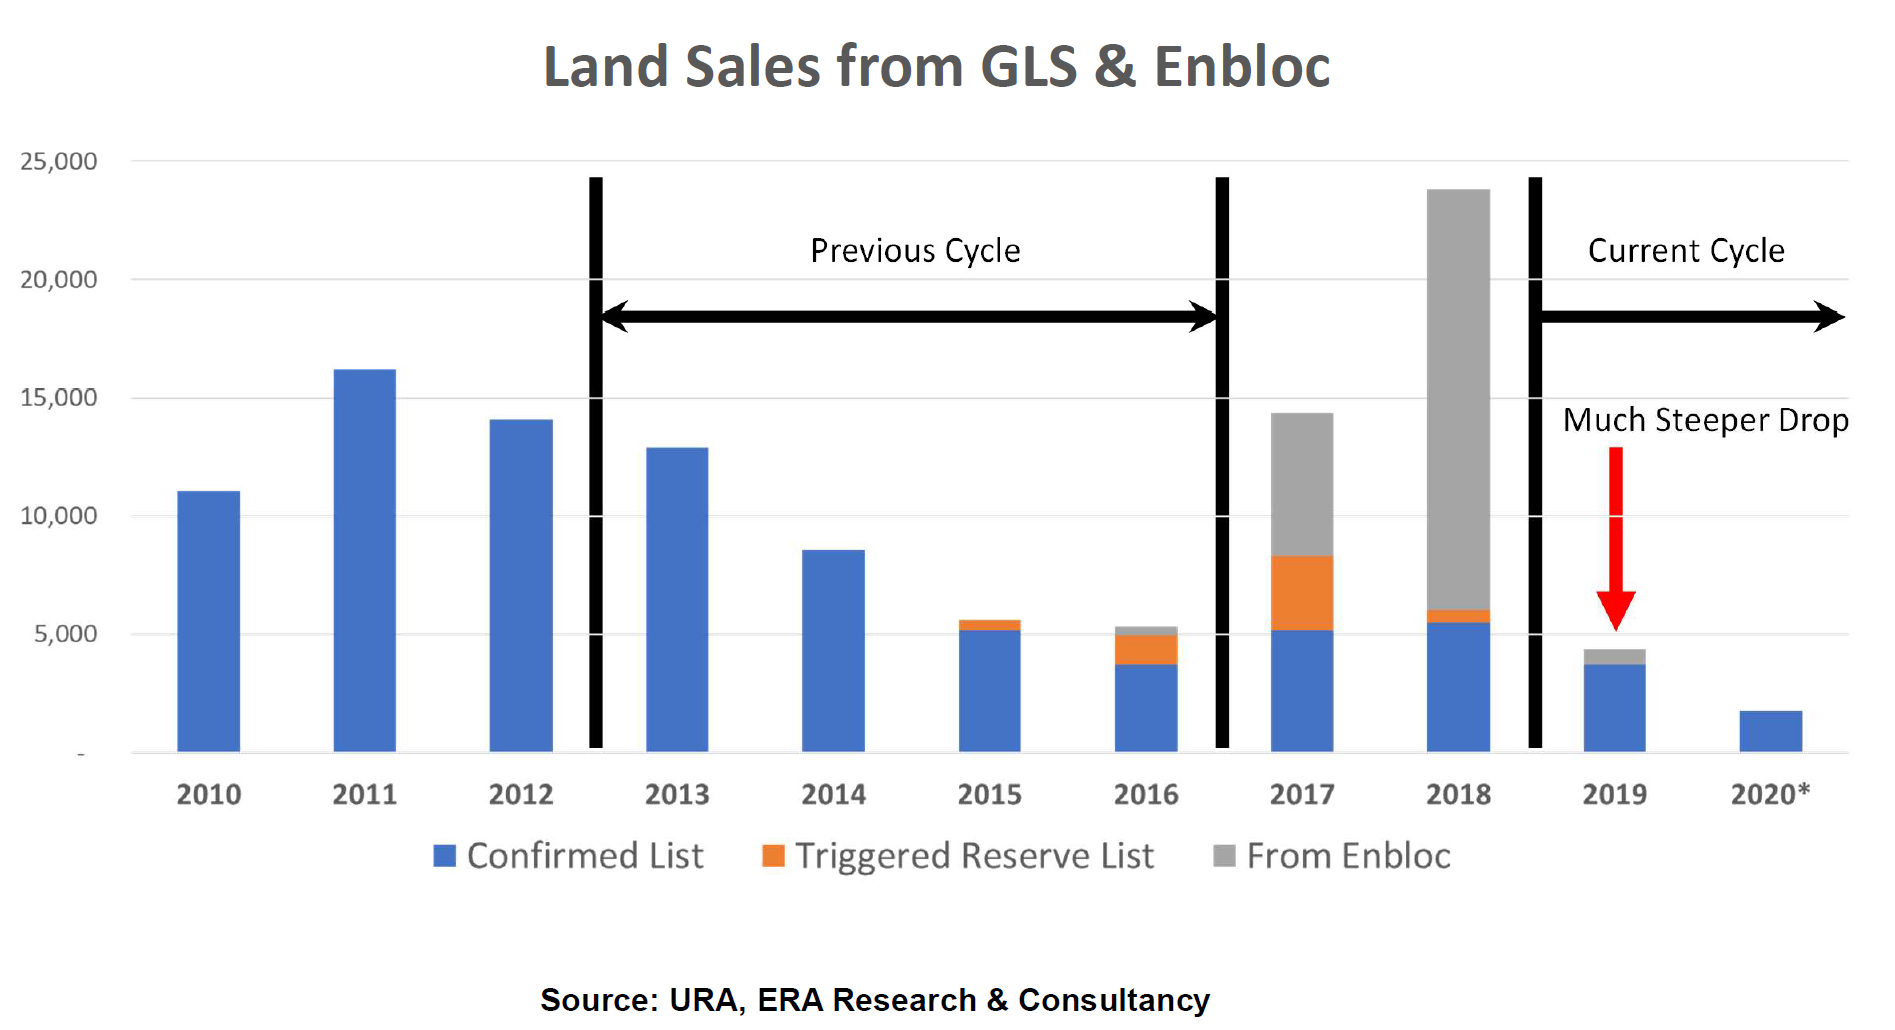 Land Sales Dropping